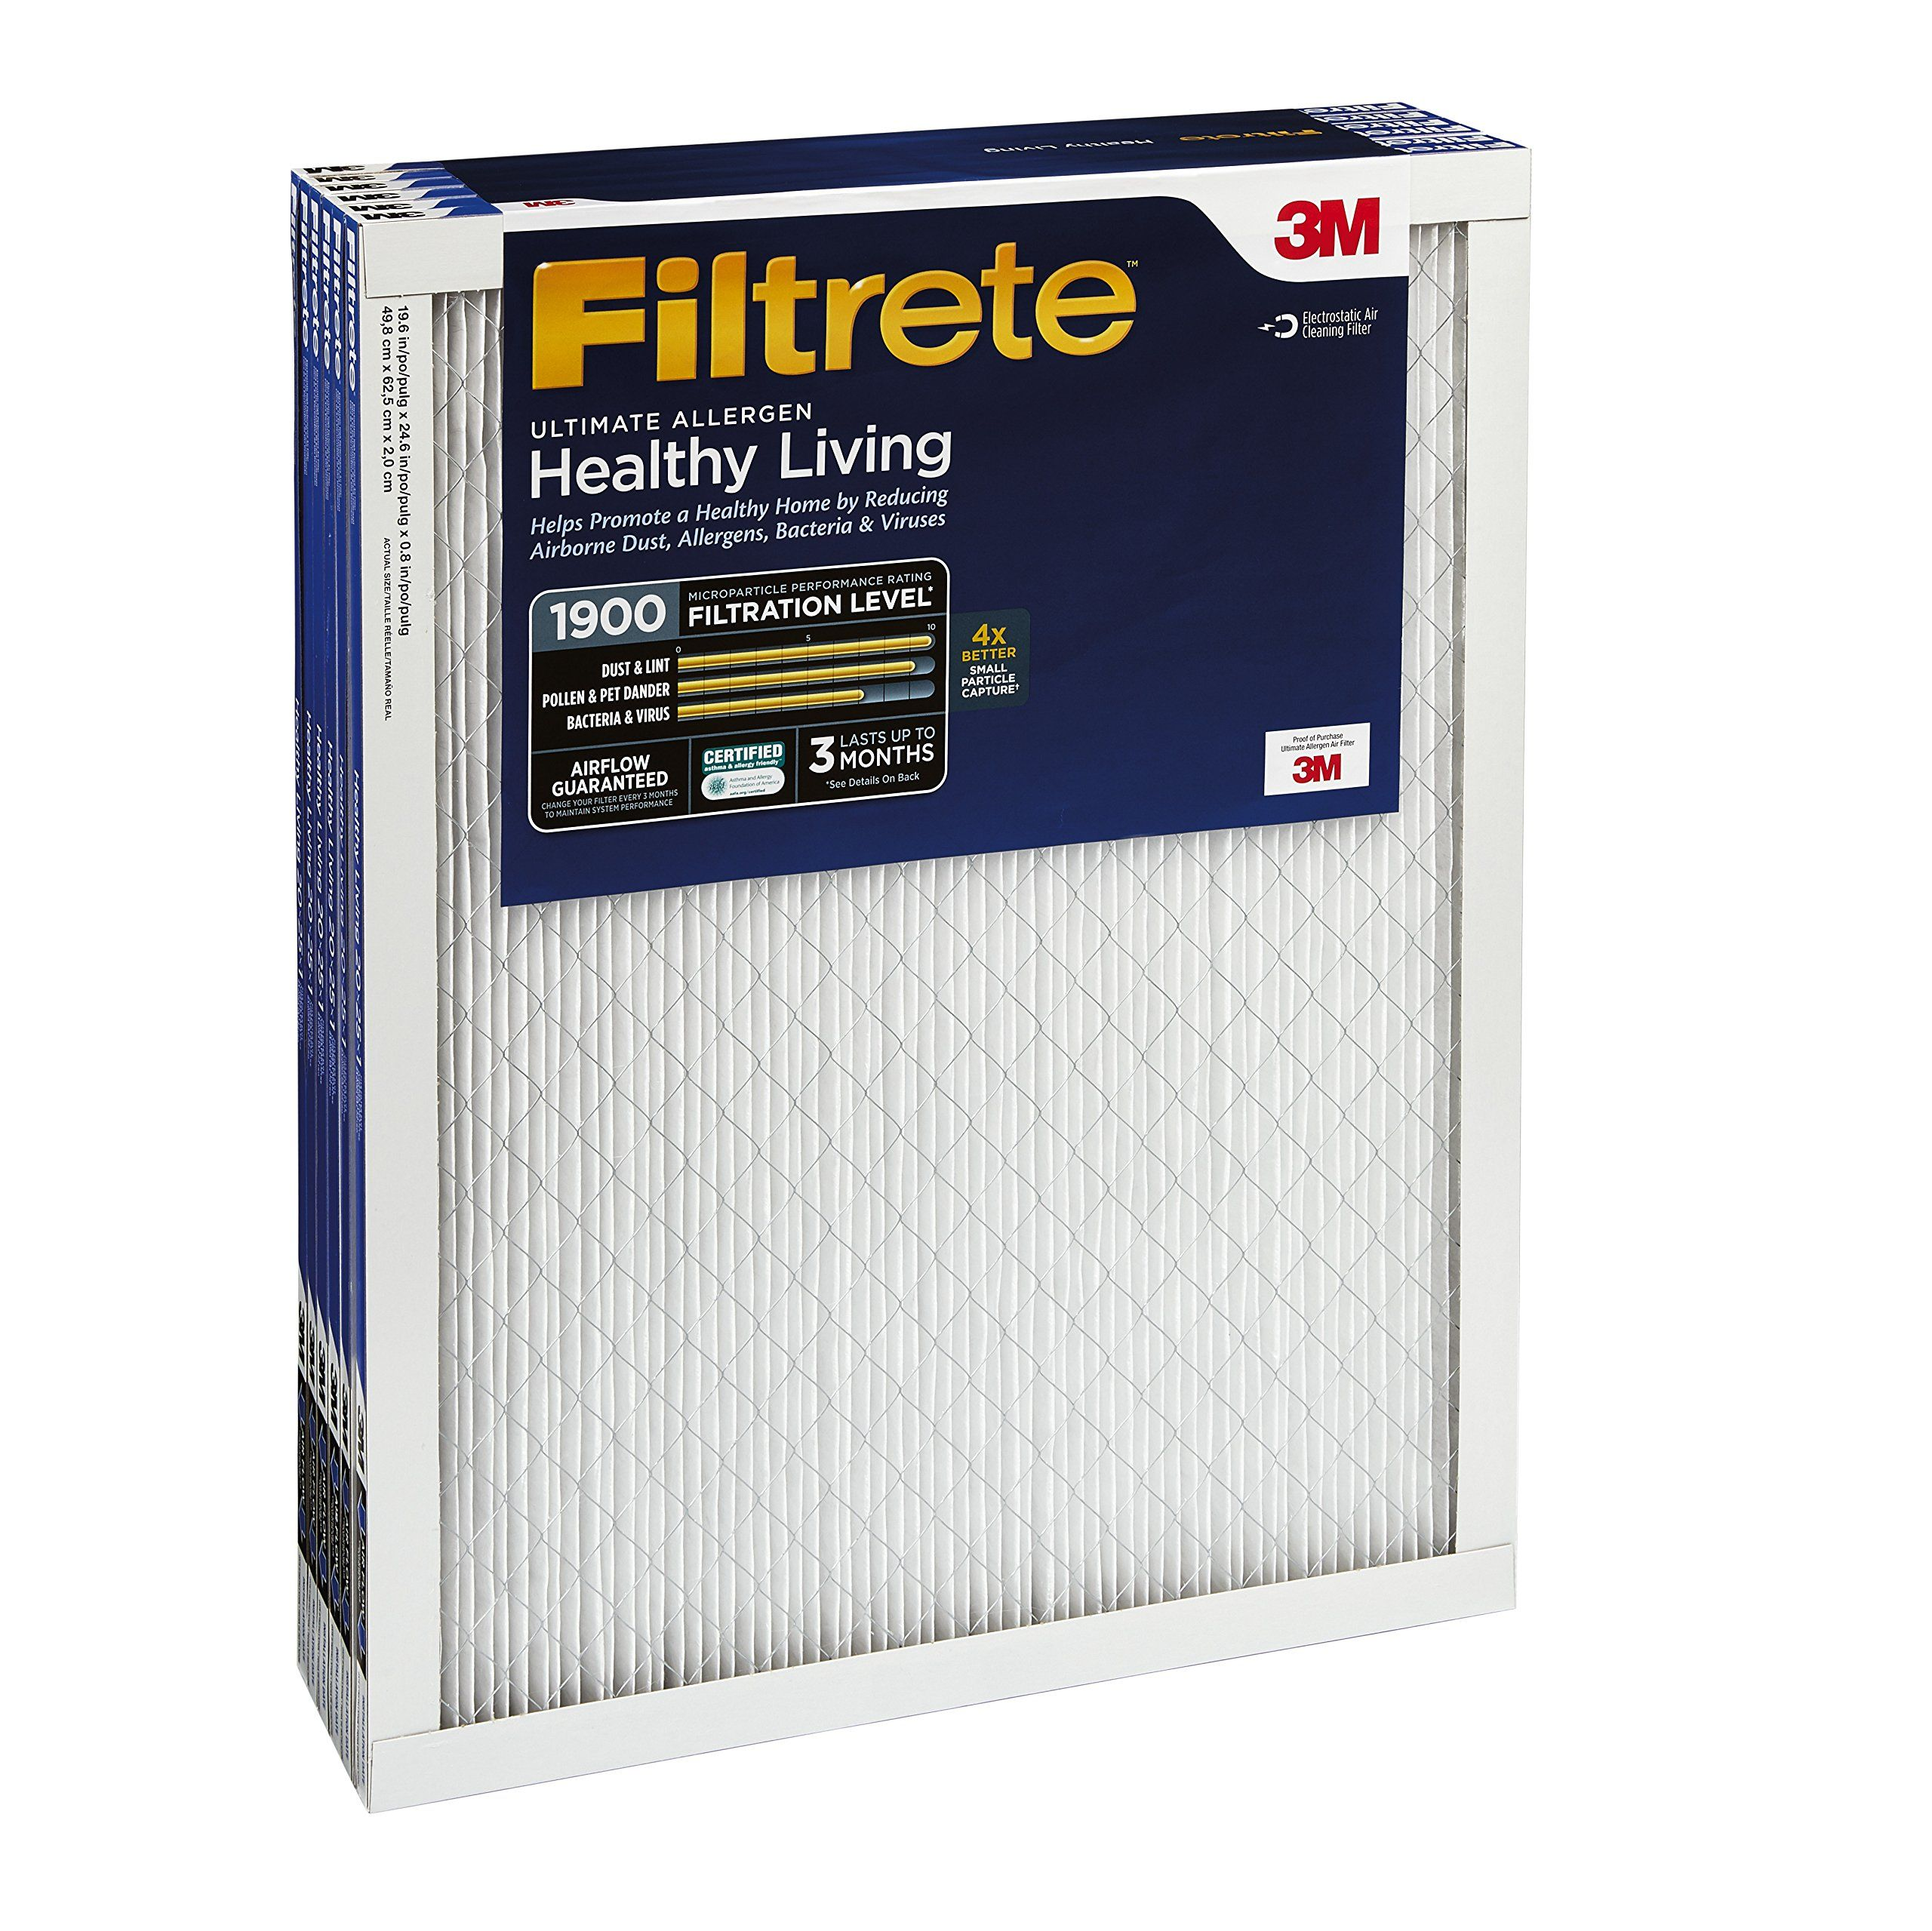 Filtrete Mpr 1900 24 X 30 X 1 Healthy Living Ultimate Allergen Reduction Hvac Air Filter Attracts Microscopic Particles Like Hvac Air Ac Furnace Healthy Living